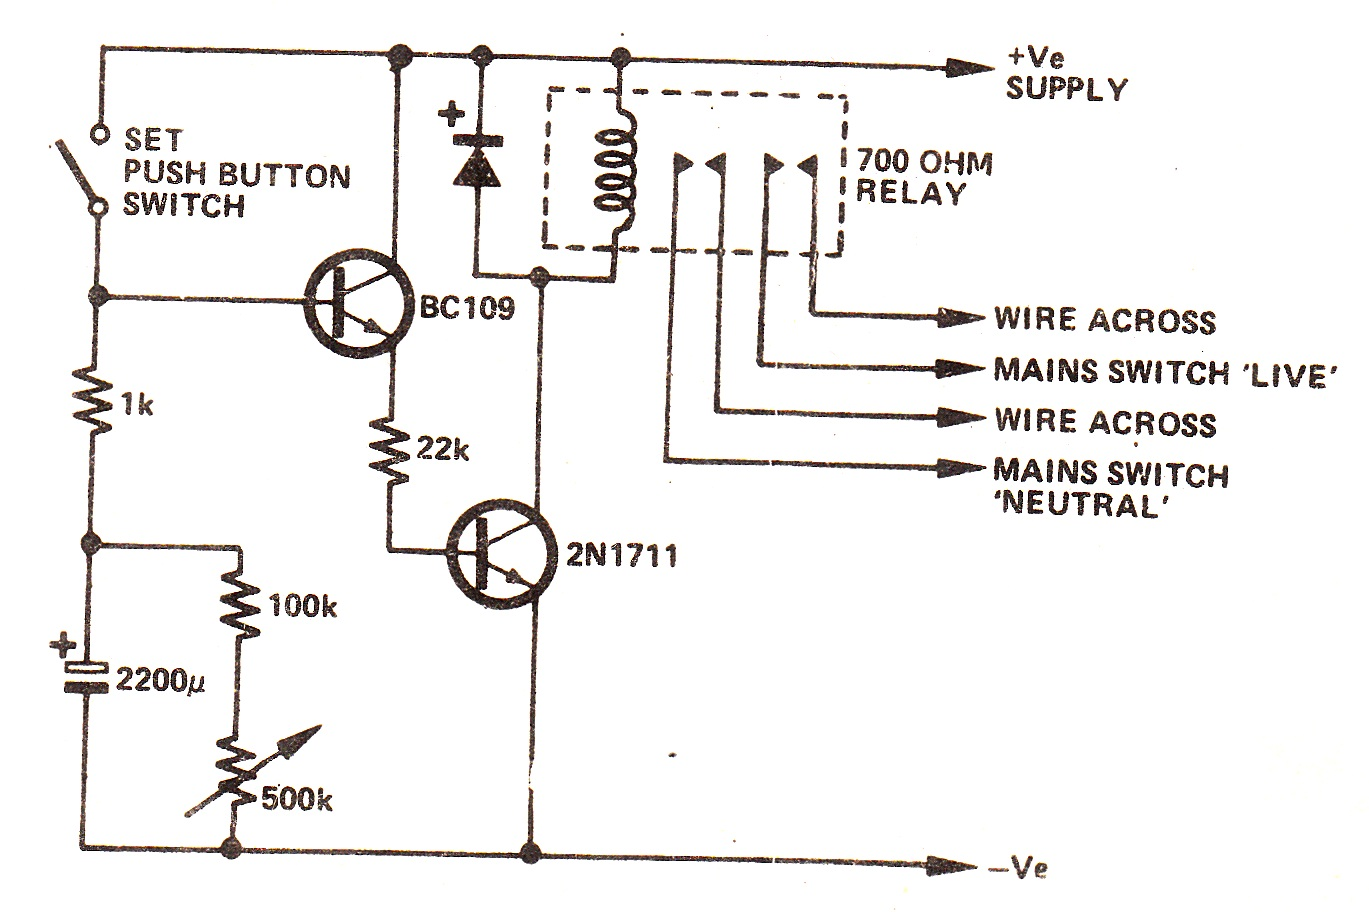 adjustable timer circuit diagram with relay output [ 1369 x 912 Pixel ]